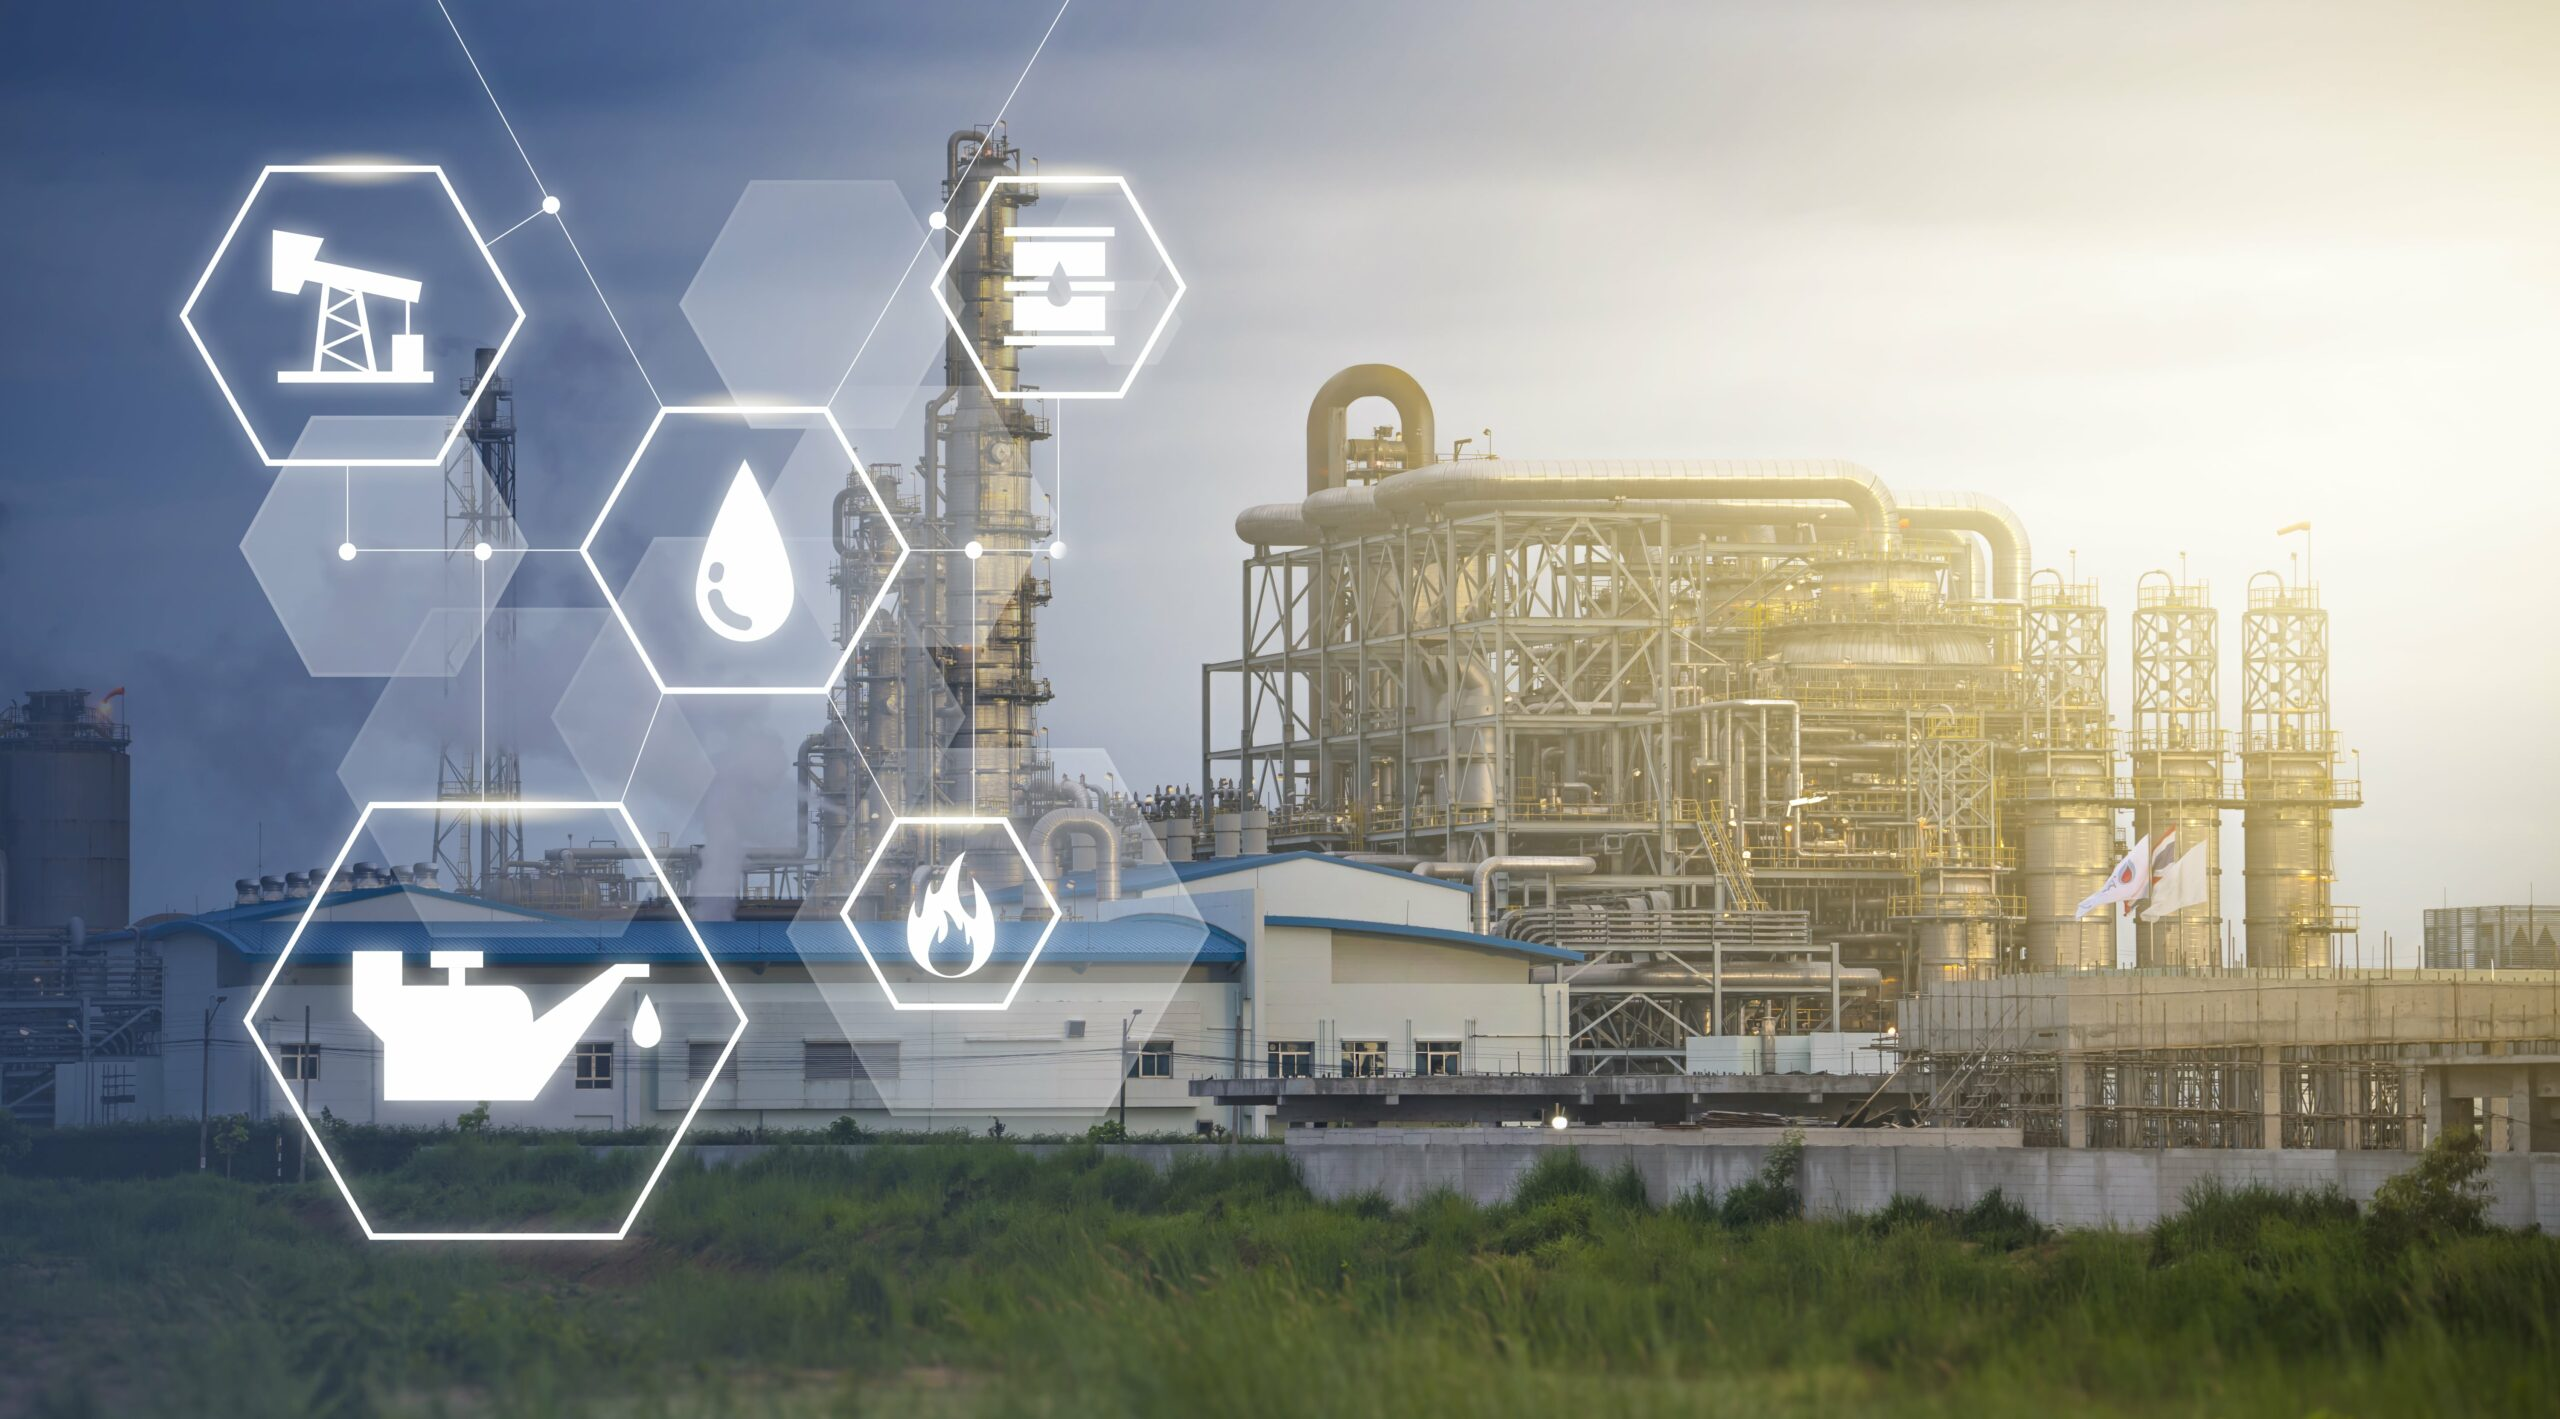 industrial oil refinery plantation engineering factory with smart technology industries lines icon, creating fuel and gas for energy sustainable economy and mechanical tech, supplying fuel resources